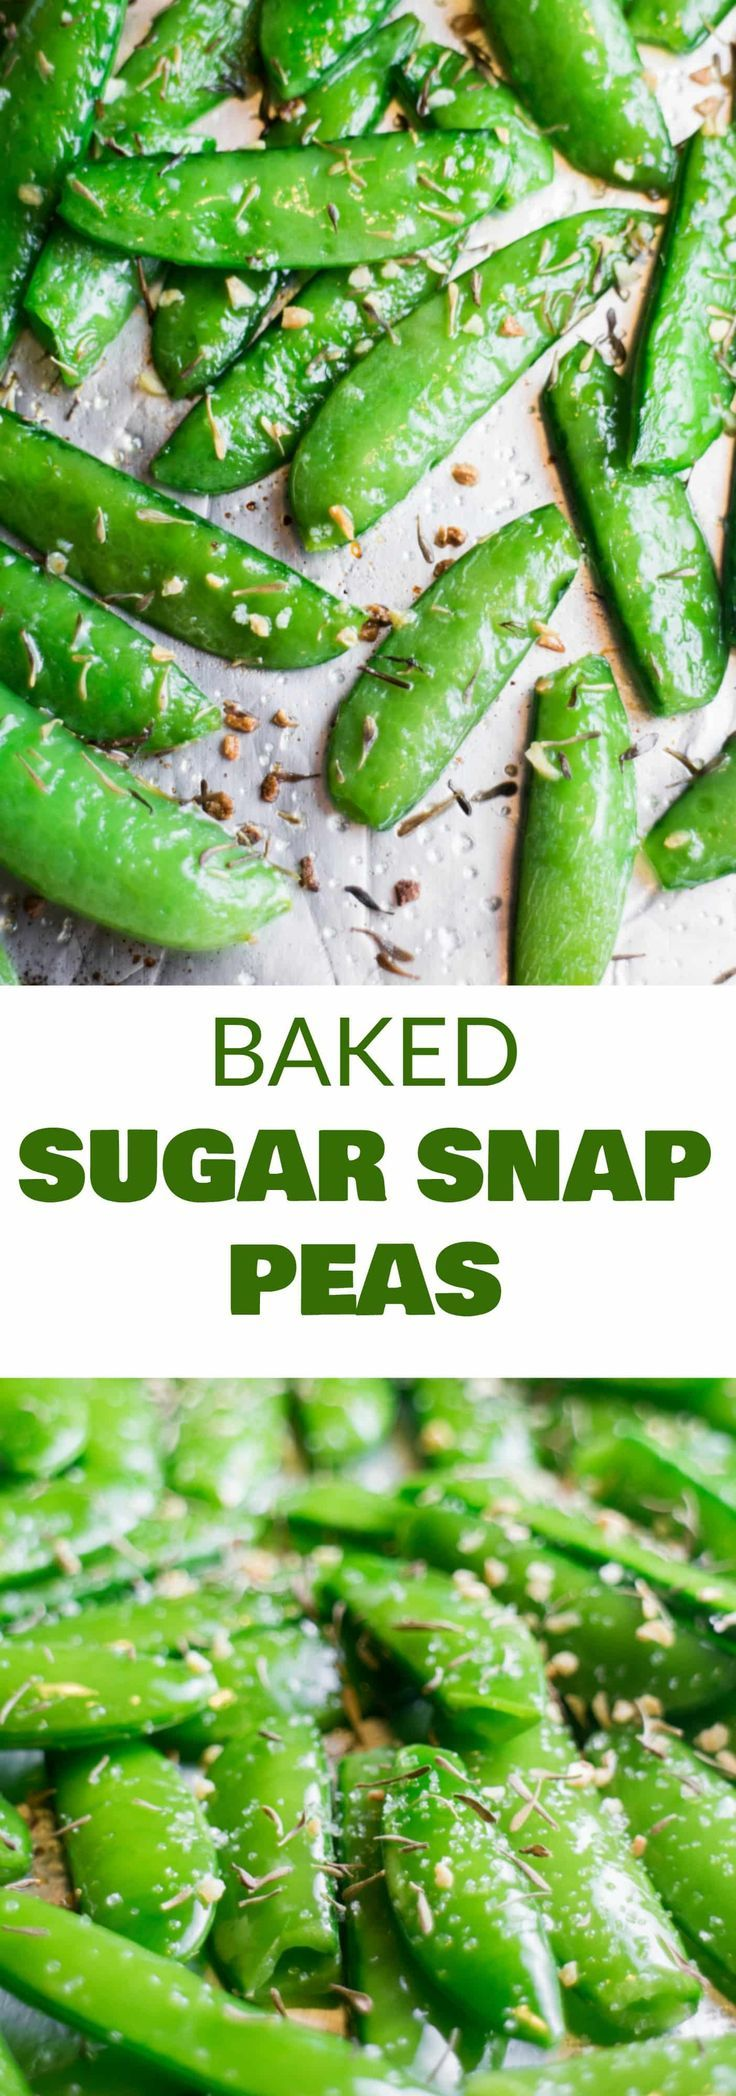 Roasted Sugar Snap Peas HEALTHY Roasted Sugar Snap Peas are easy to make and ready in 8 minutes! Sprinkle with garlic, thyme and salt for a healthy snack! Adults and kids both love this easy delicious pea recipe!